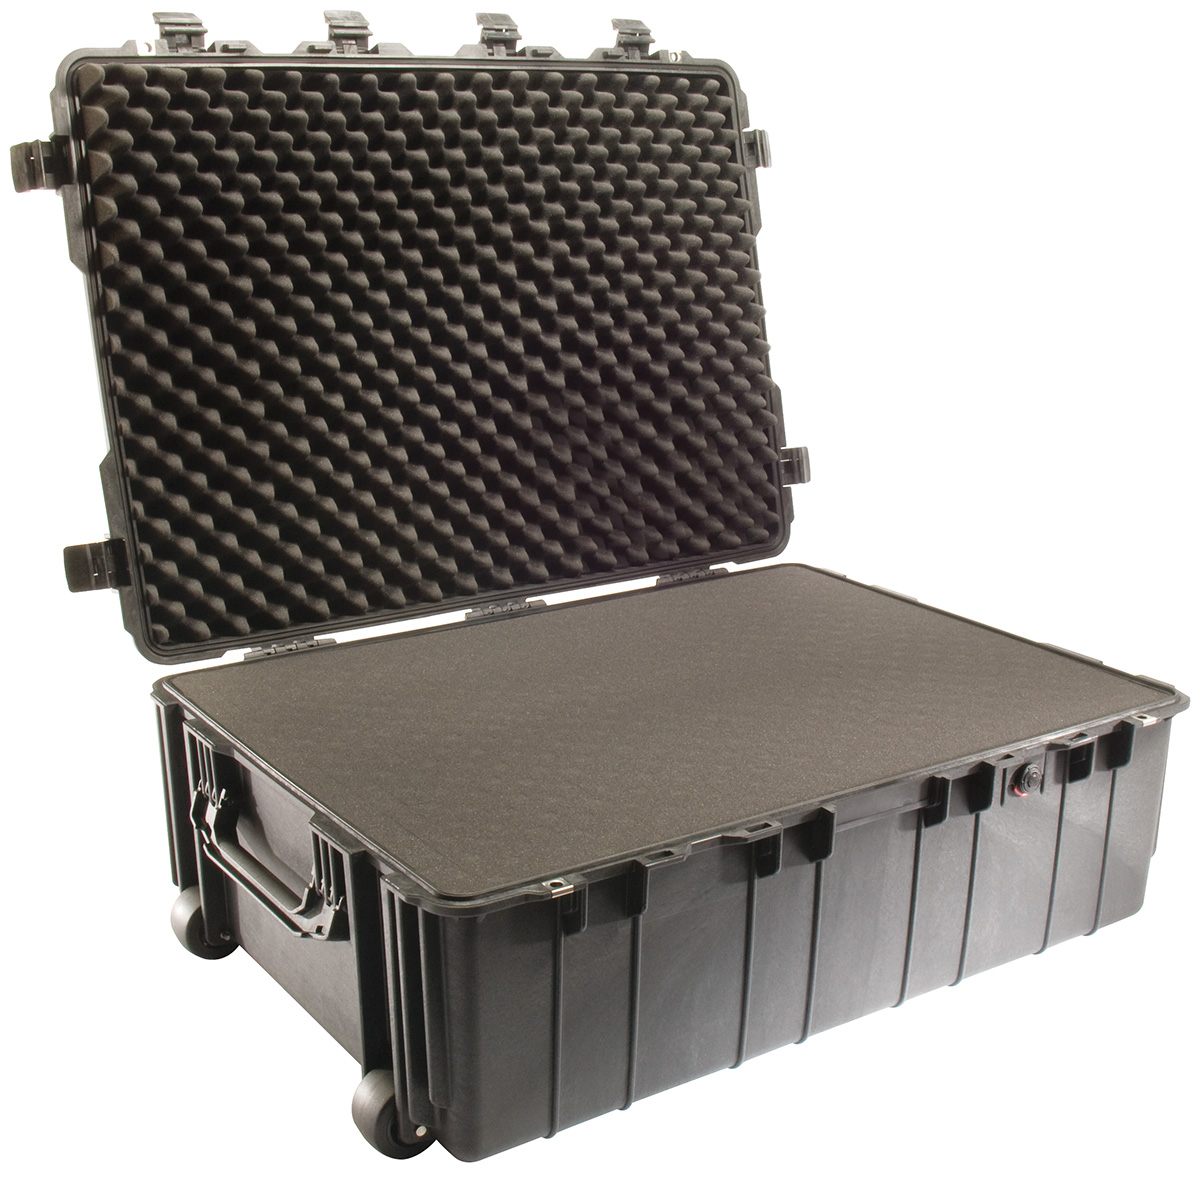 pelican peli products 1730 hard military rolling transport case